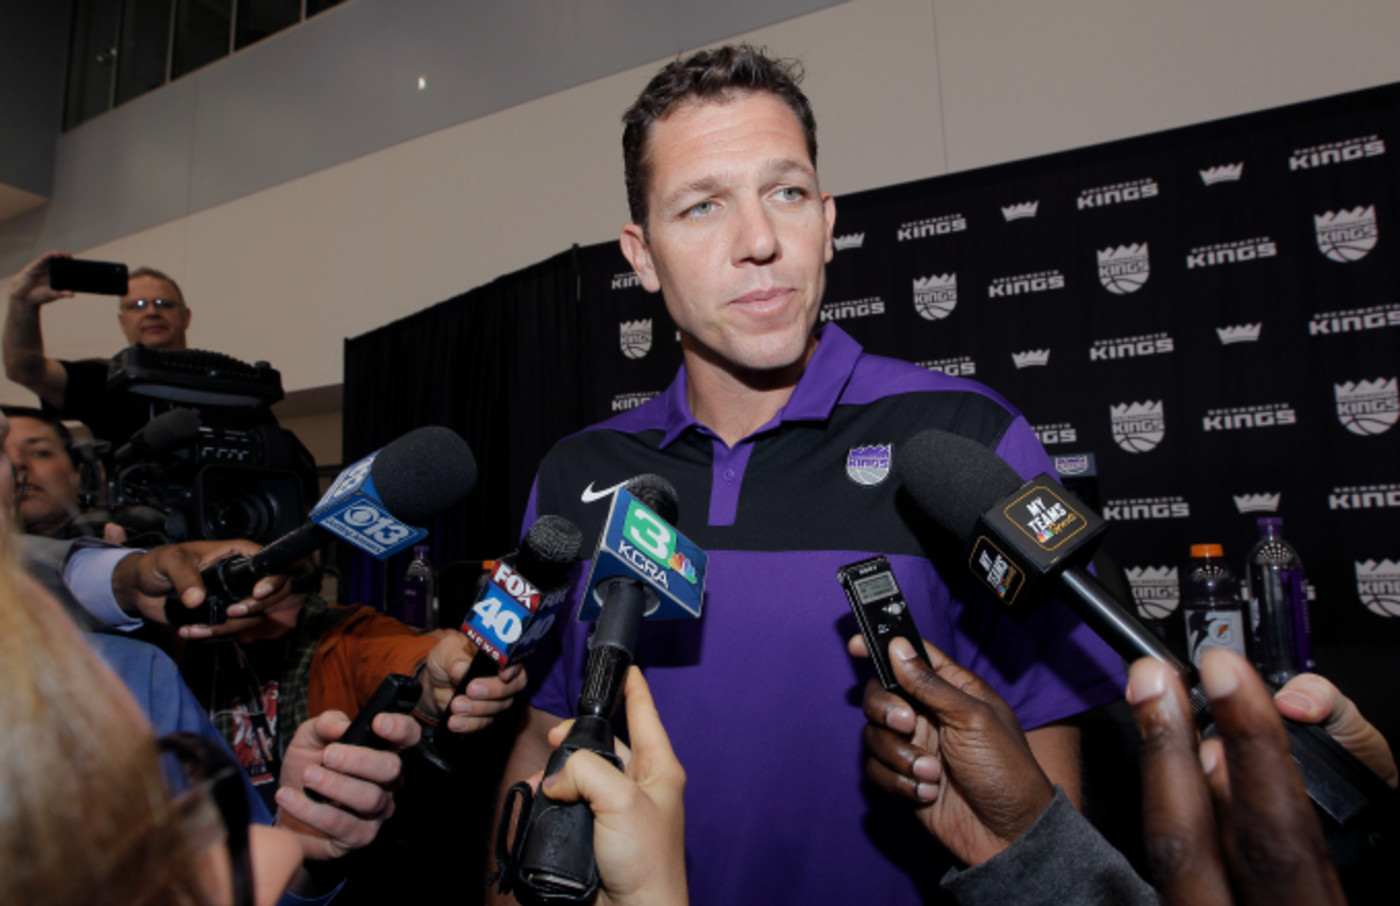 Vlade Divac introduces Luke Walton as the new Head Coach of the Sacramento Kings